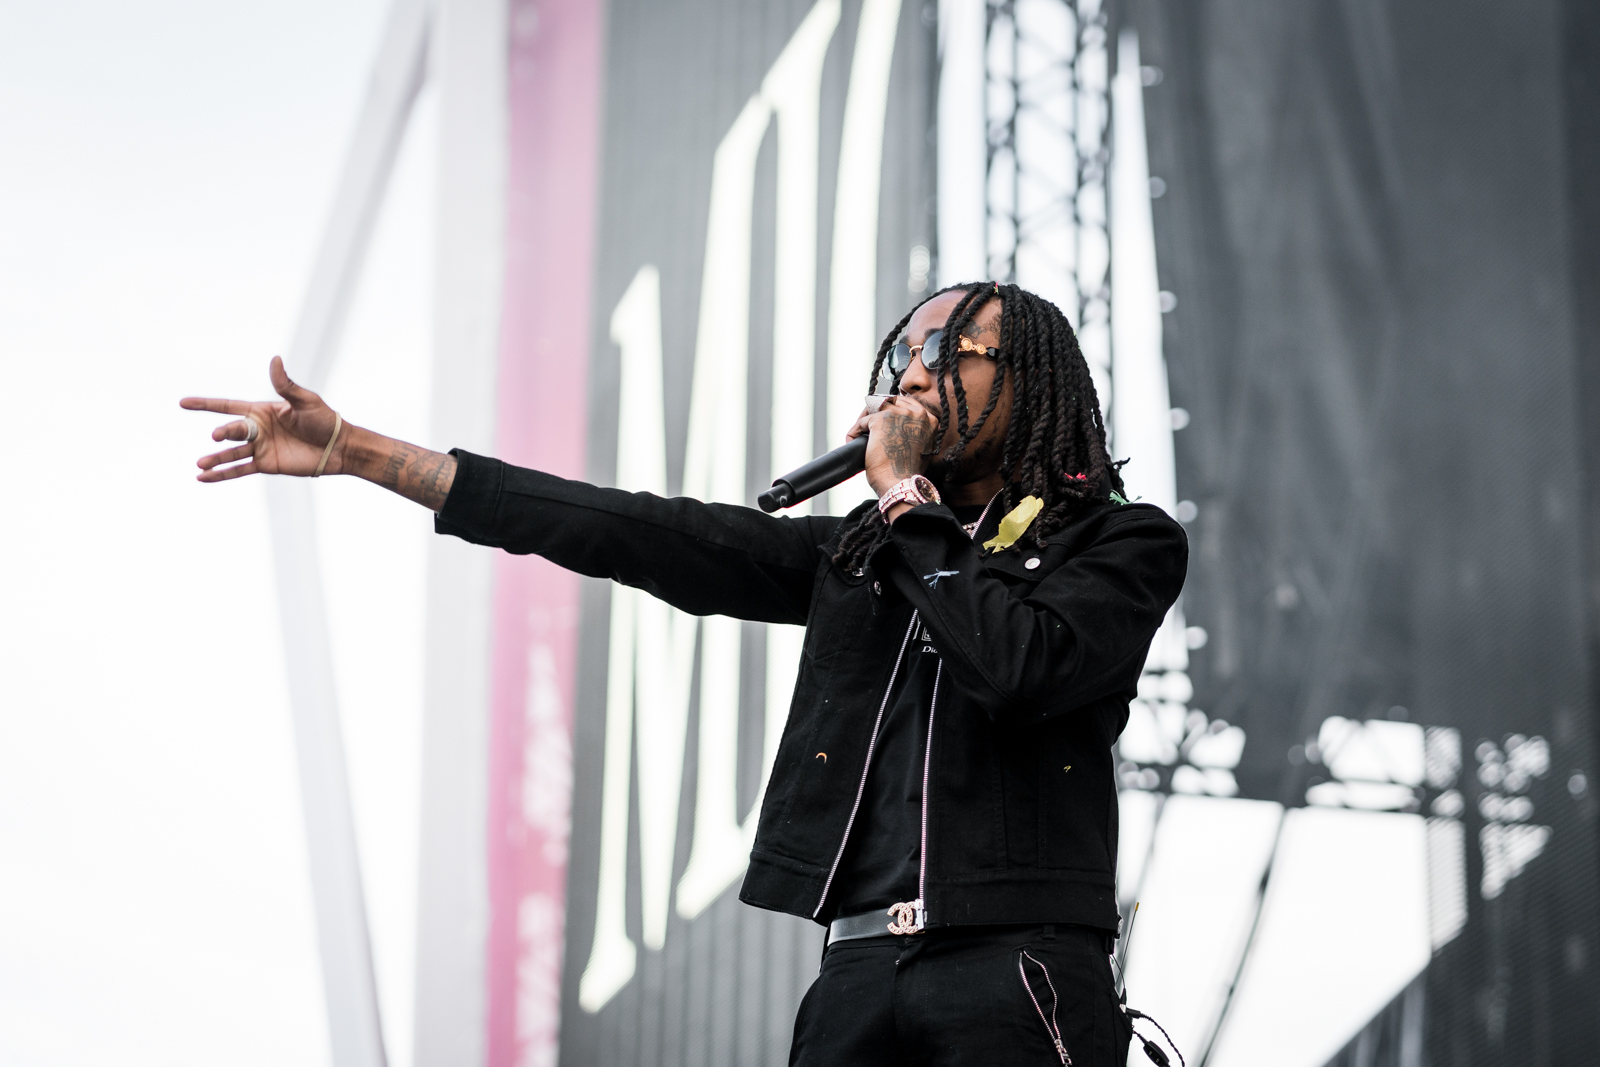 Migos, featuring Quavo, performed at the the May Rolling Loud festival in Miami. Photo by Jørund Føreland Pedersen via Wikimedia Commons